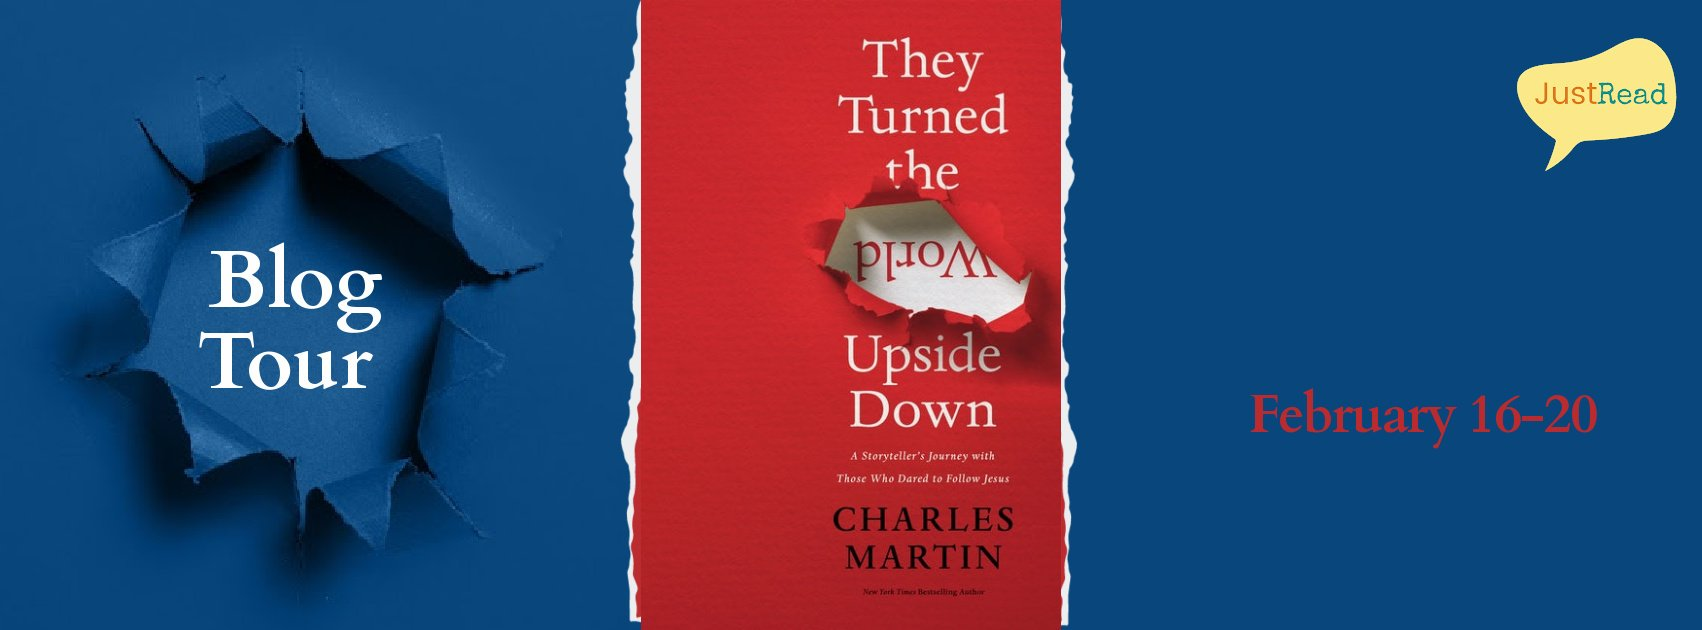 They Turned the World Upside Down JustRead Blog Tour